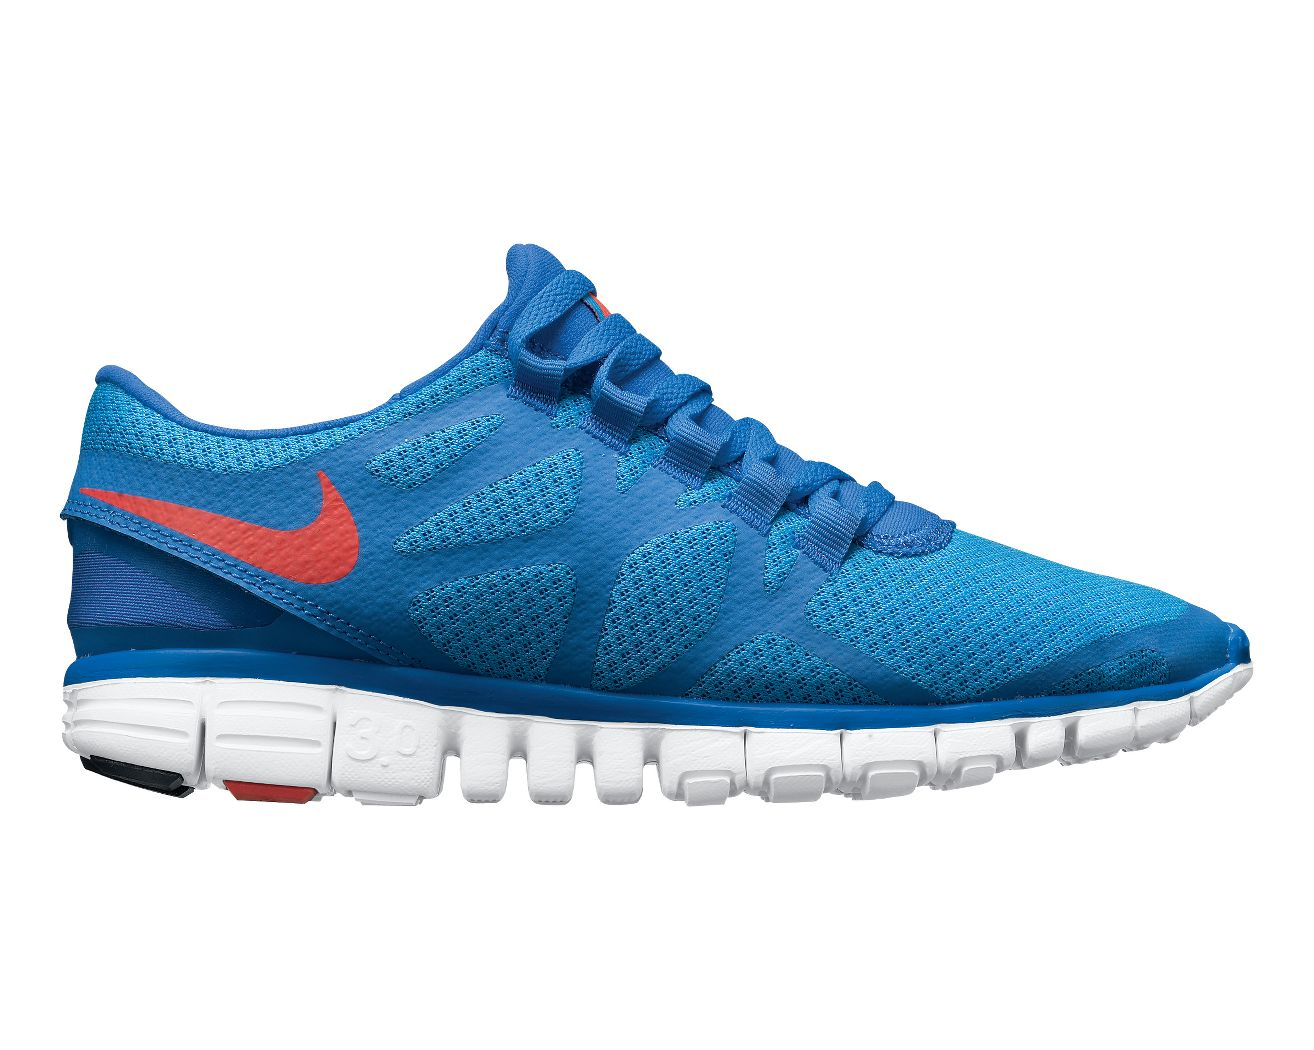 newest f5dba 192a2 ... Nike Free Run 3.0 Sverige ...